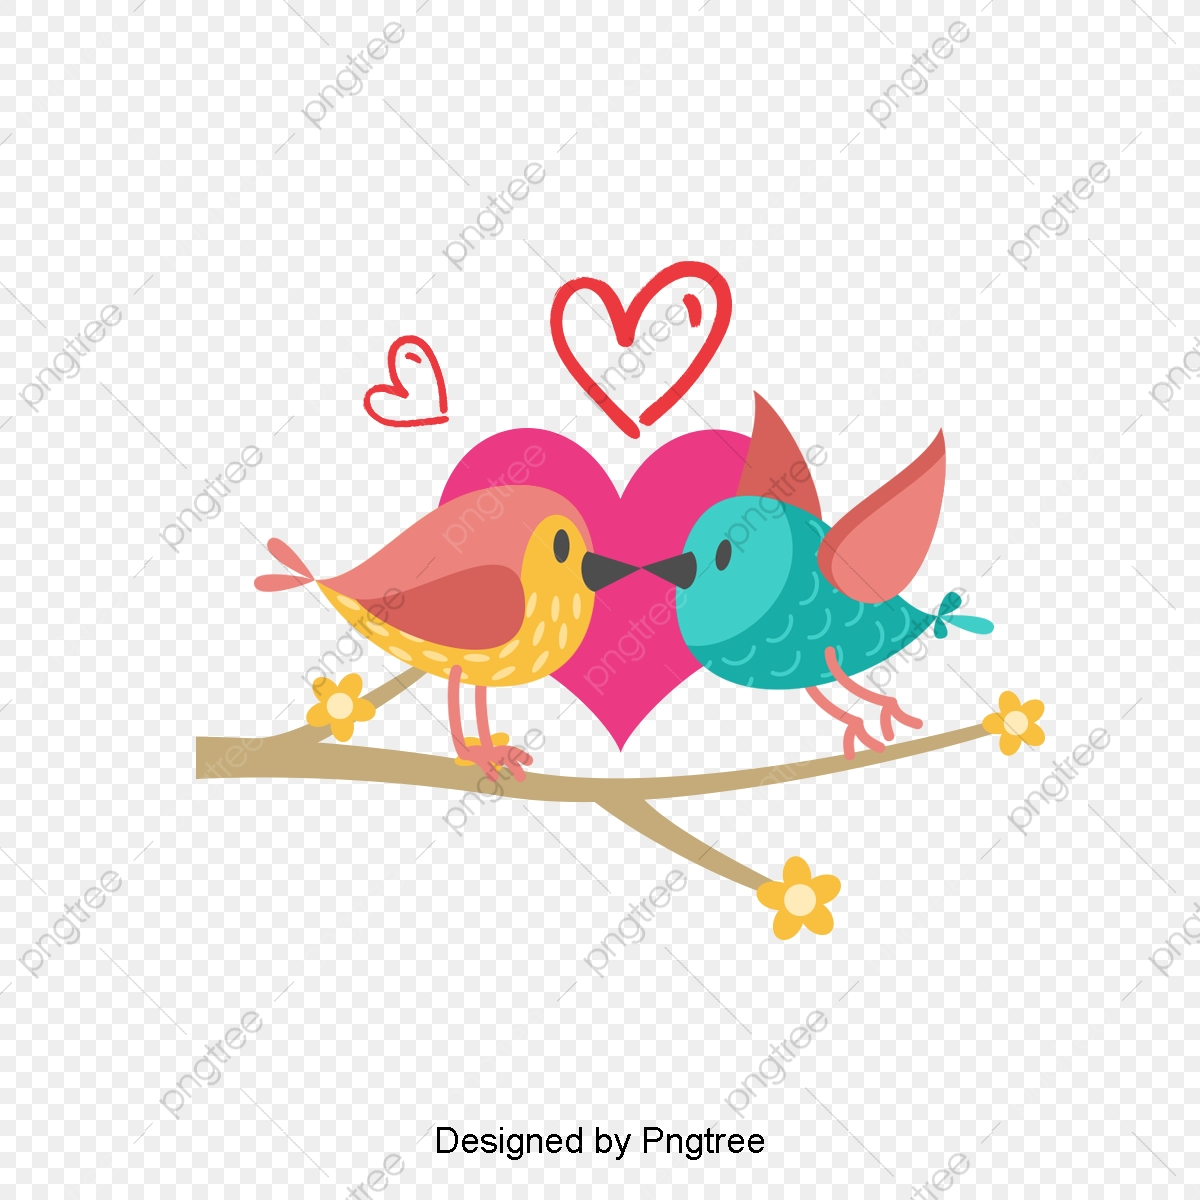 Qixi Festival Lovebirds, Qixi Festival, Lovebirds, Loving.